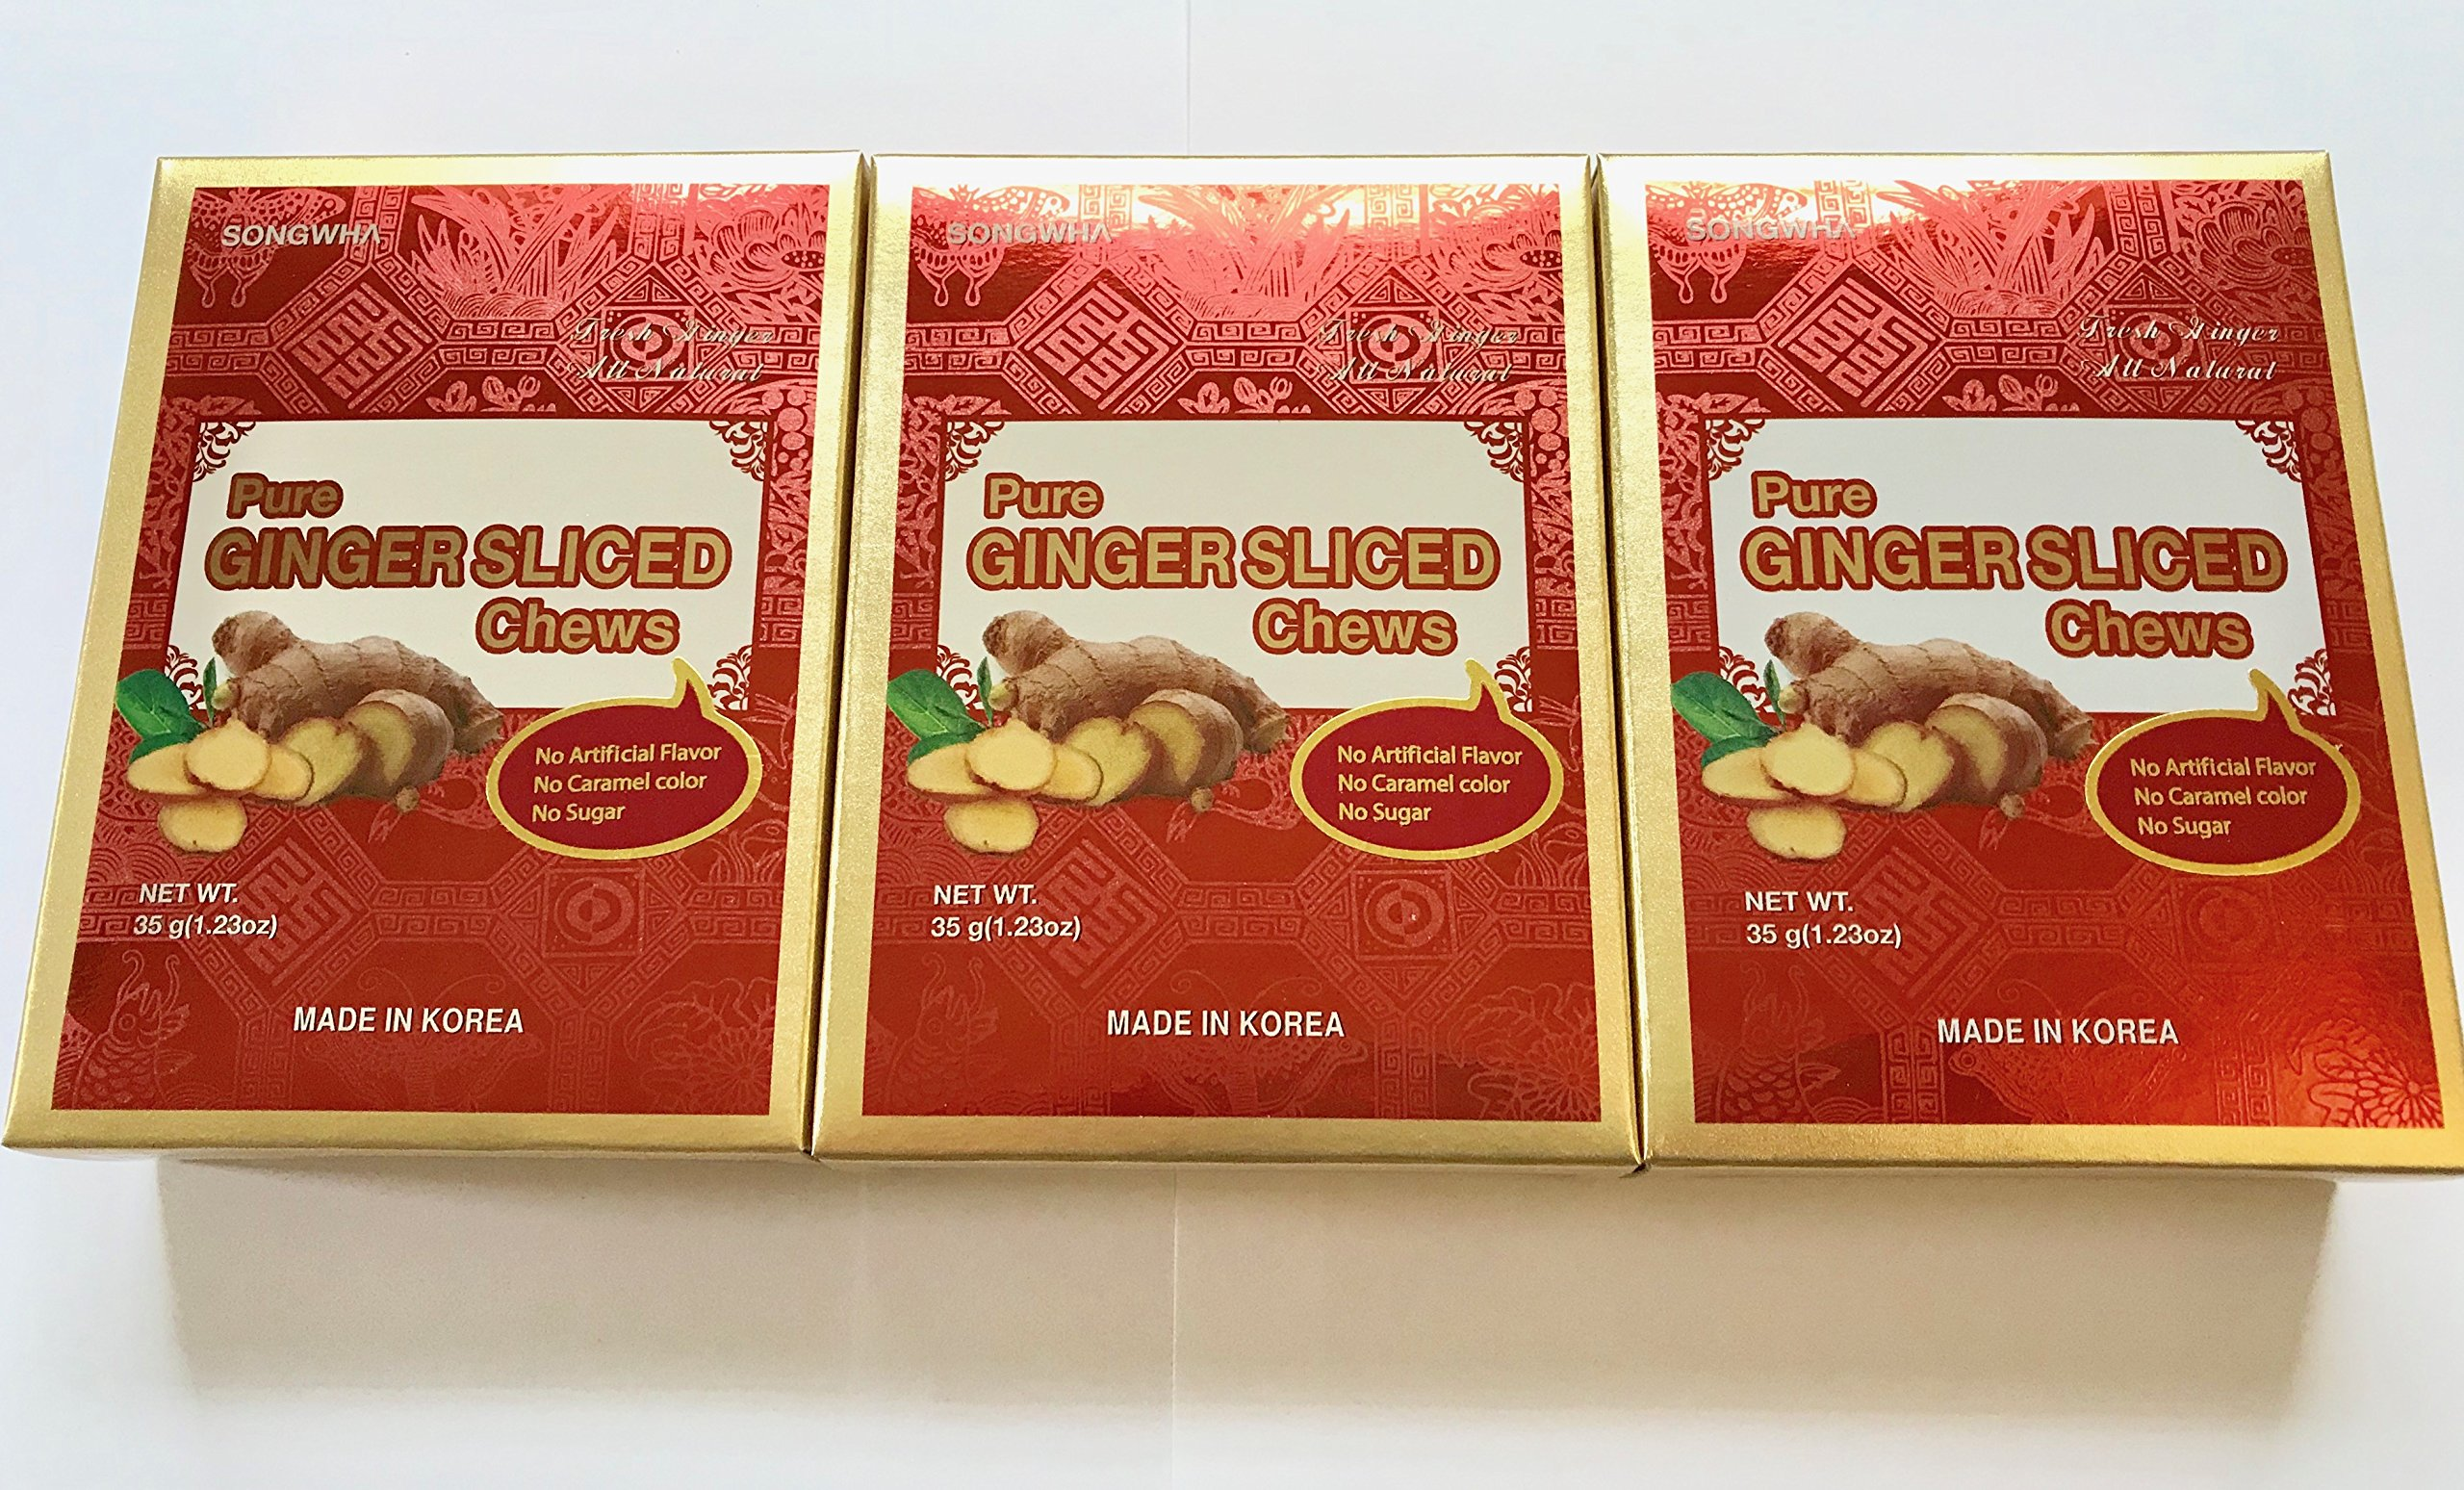 Songwha Pure Ginger Slices 3.7oz (Pack of 2) by Songwha (Image #3)